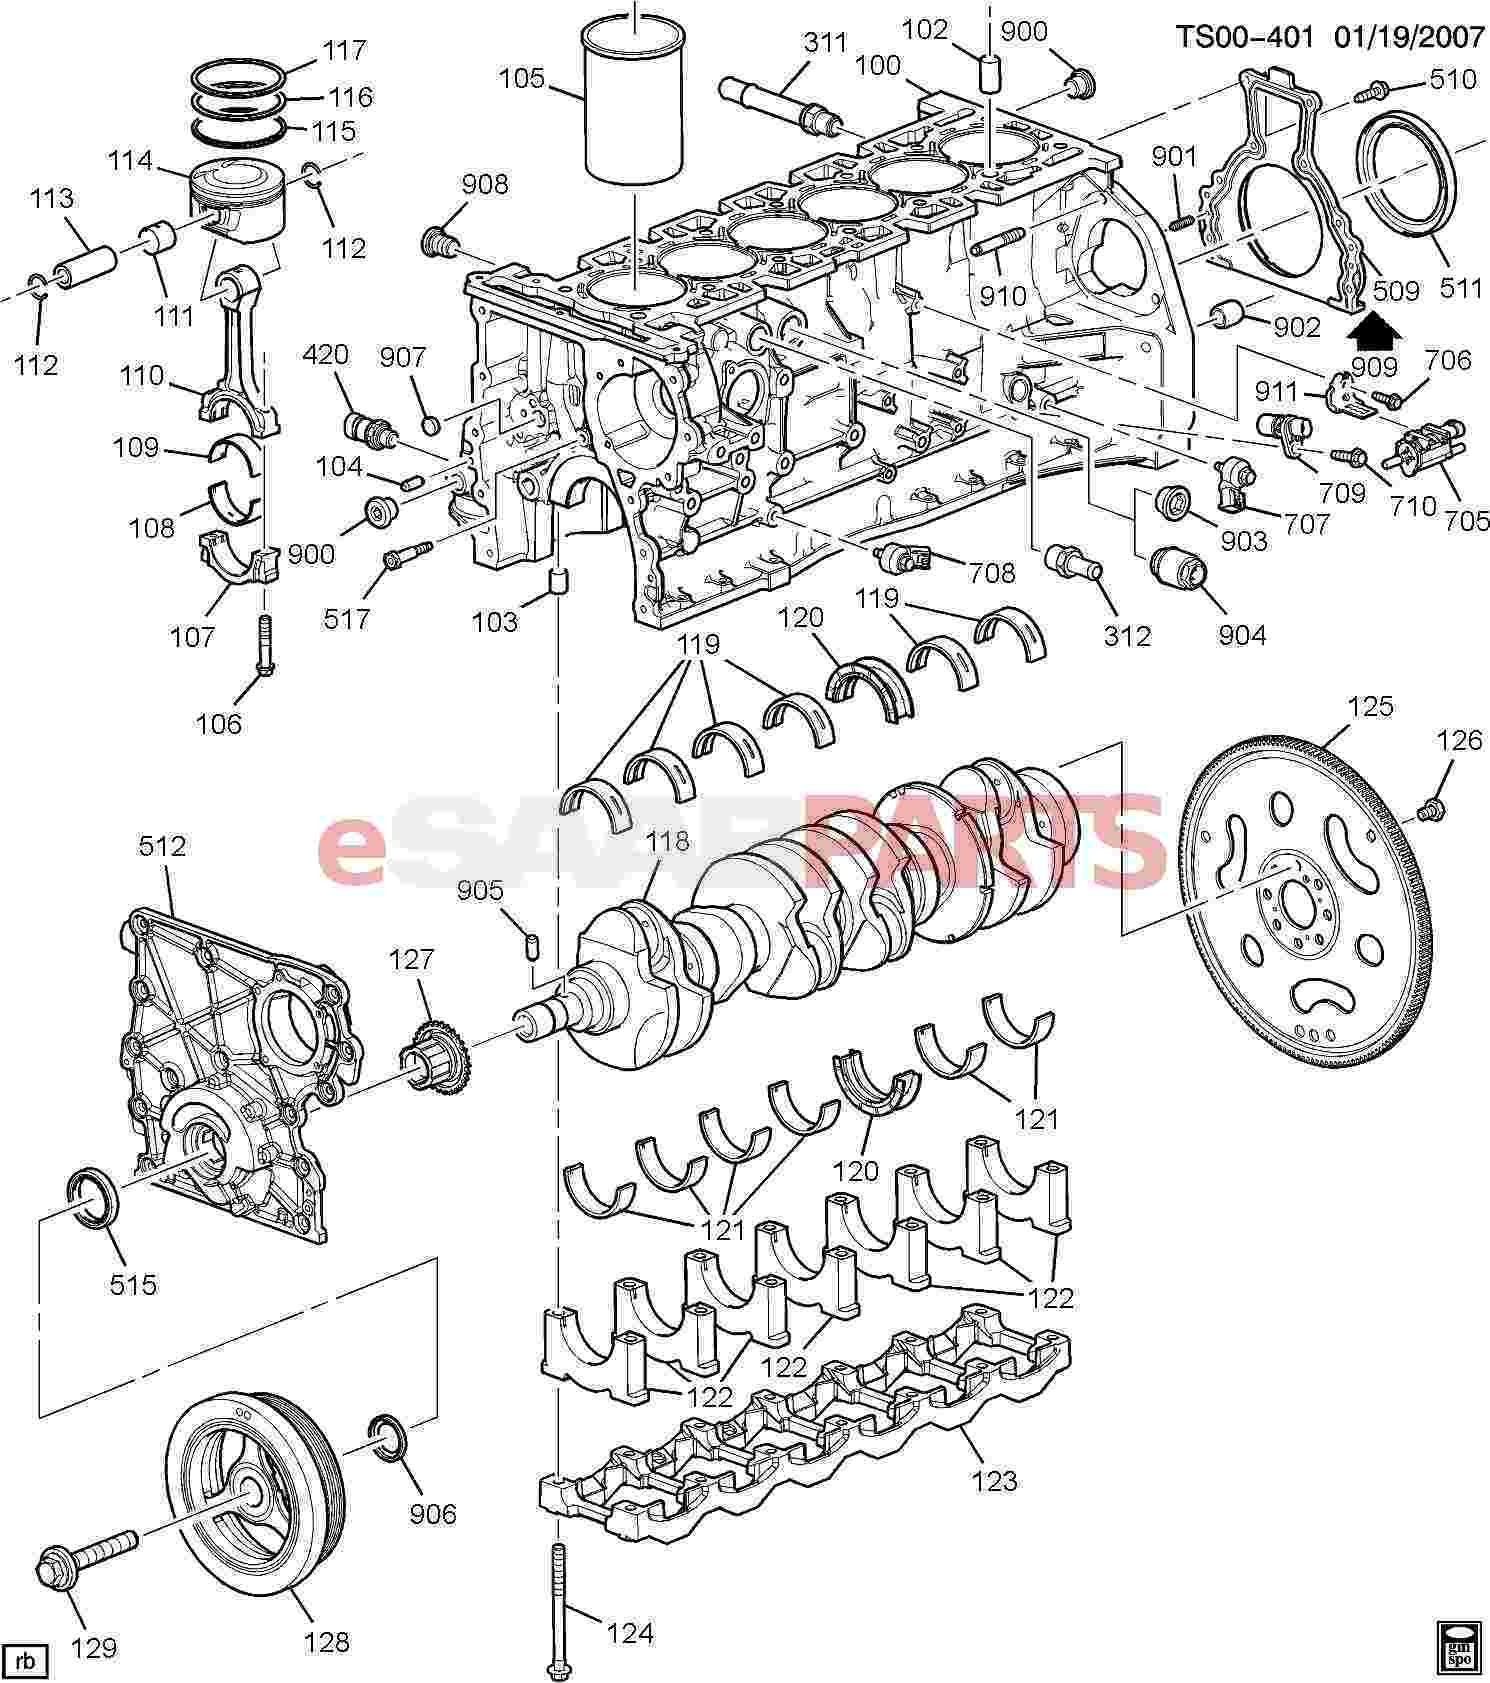 2005 Chevy Malibu Engine Diagram ] Saab Plug M16x1 5×14 24 Od society Automotive Of 2005 Chevy Malibu Engine Diagram